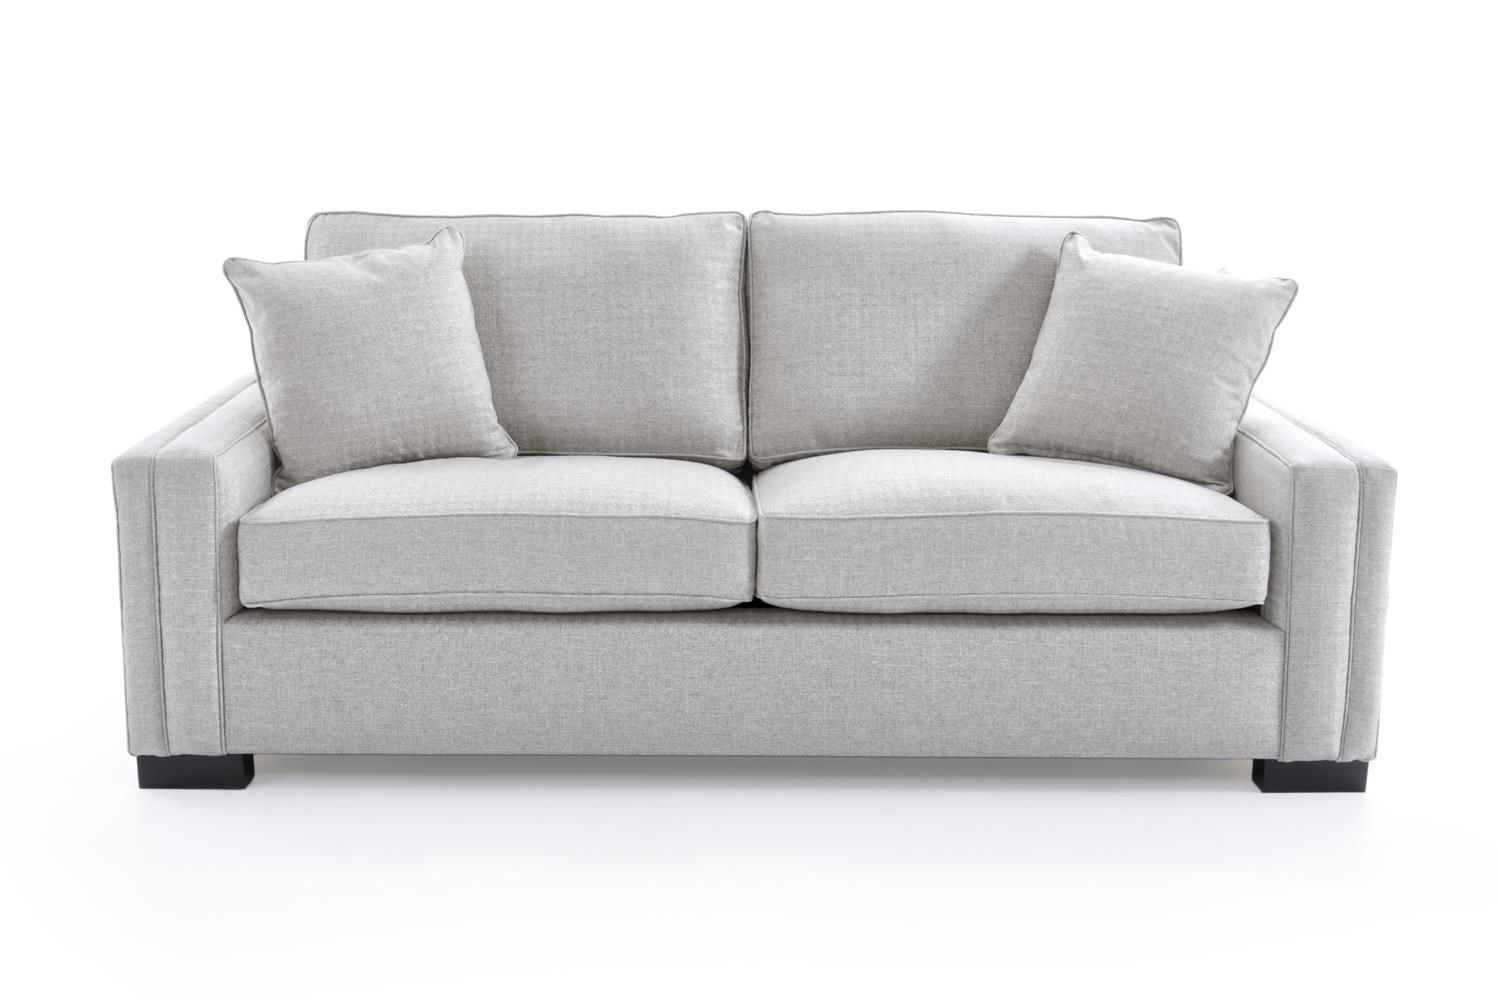 Broyhill Furniture Rocco Queen Sofa Sleeper - Item Number: 4280-7 4697-92 CF TP